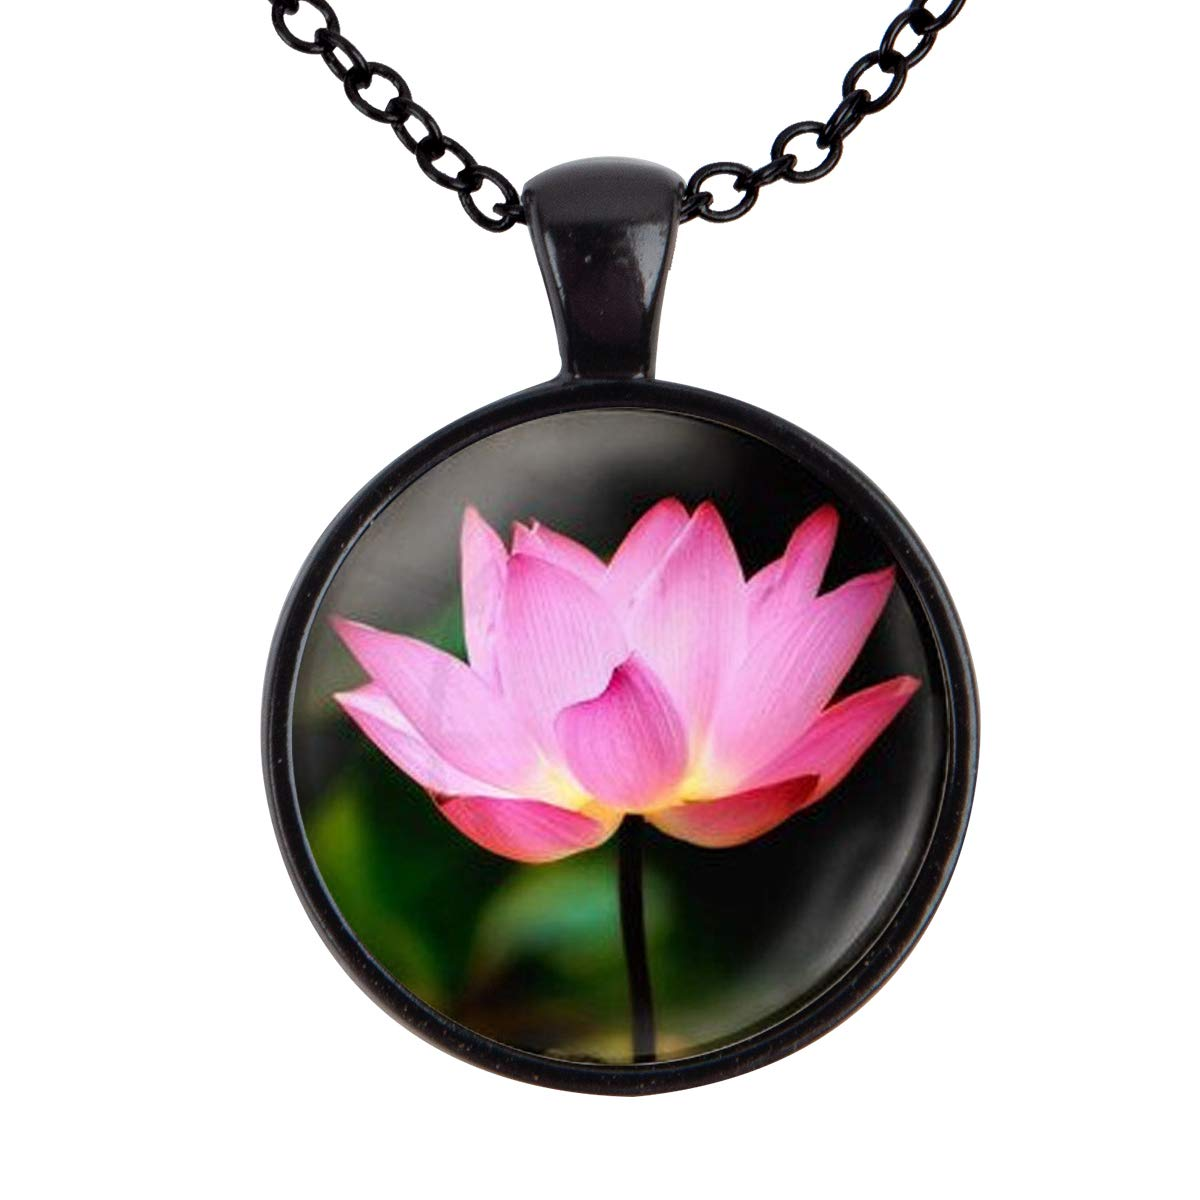 Family Decor Pink Lotus Art Pendant Necklace Cabochon Glass Vintage Bronze Chain Necklace Jewelry Handmade